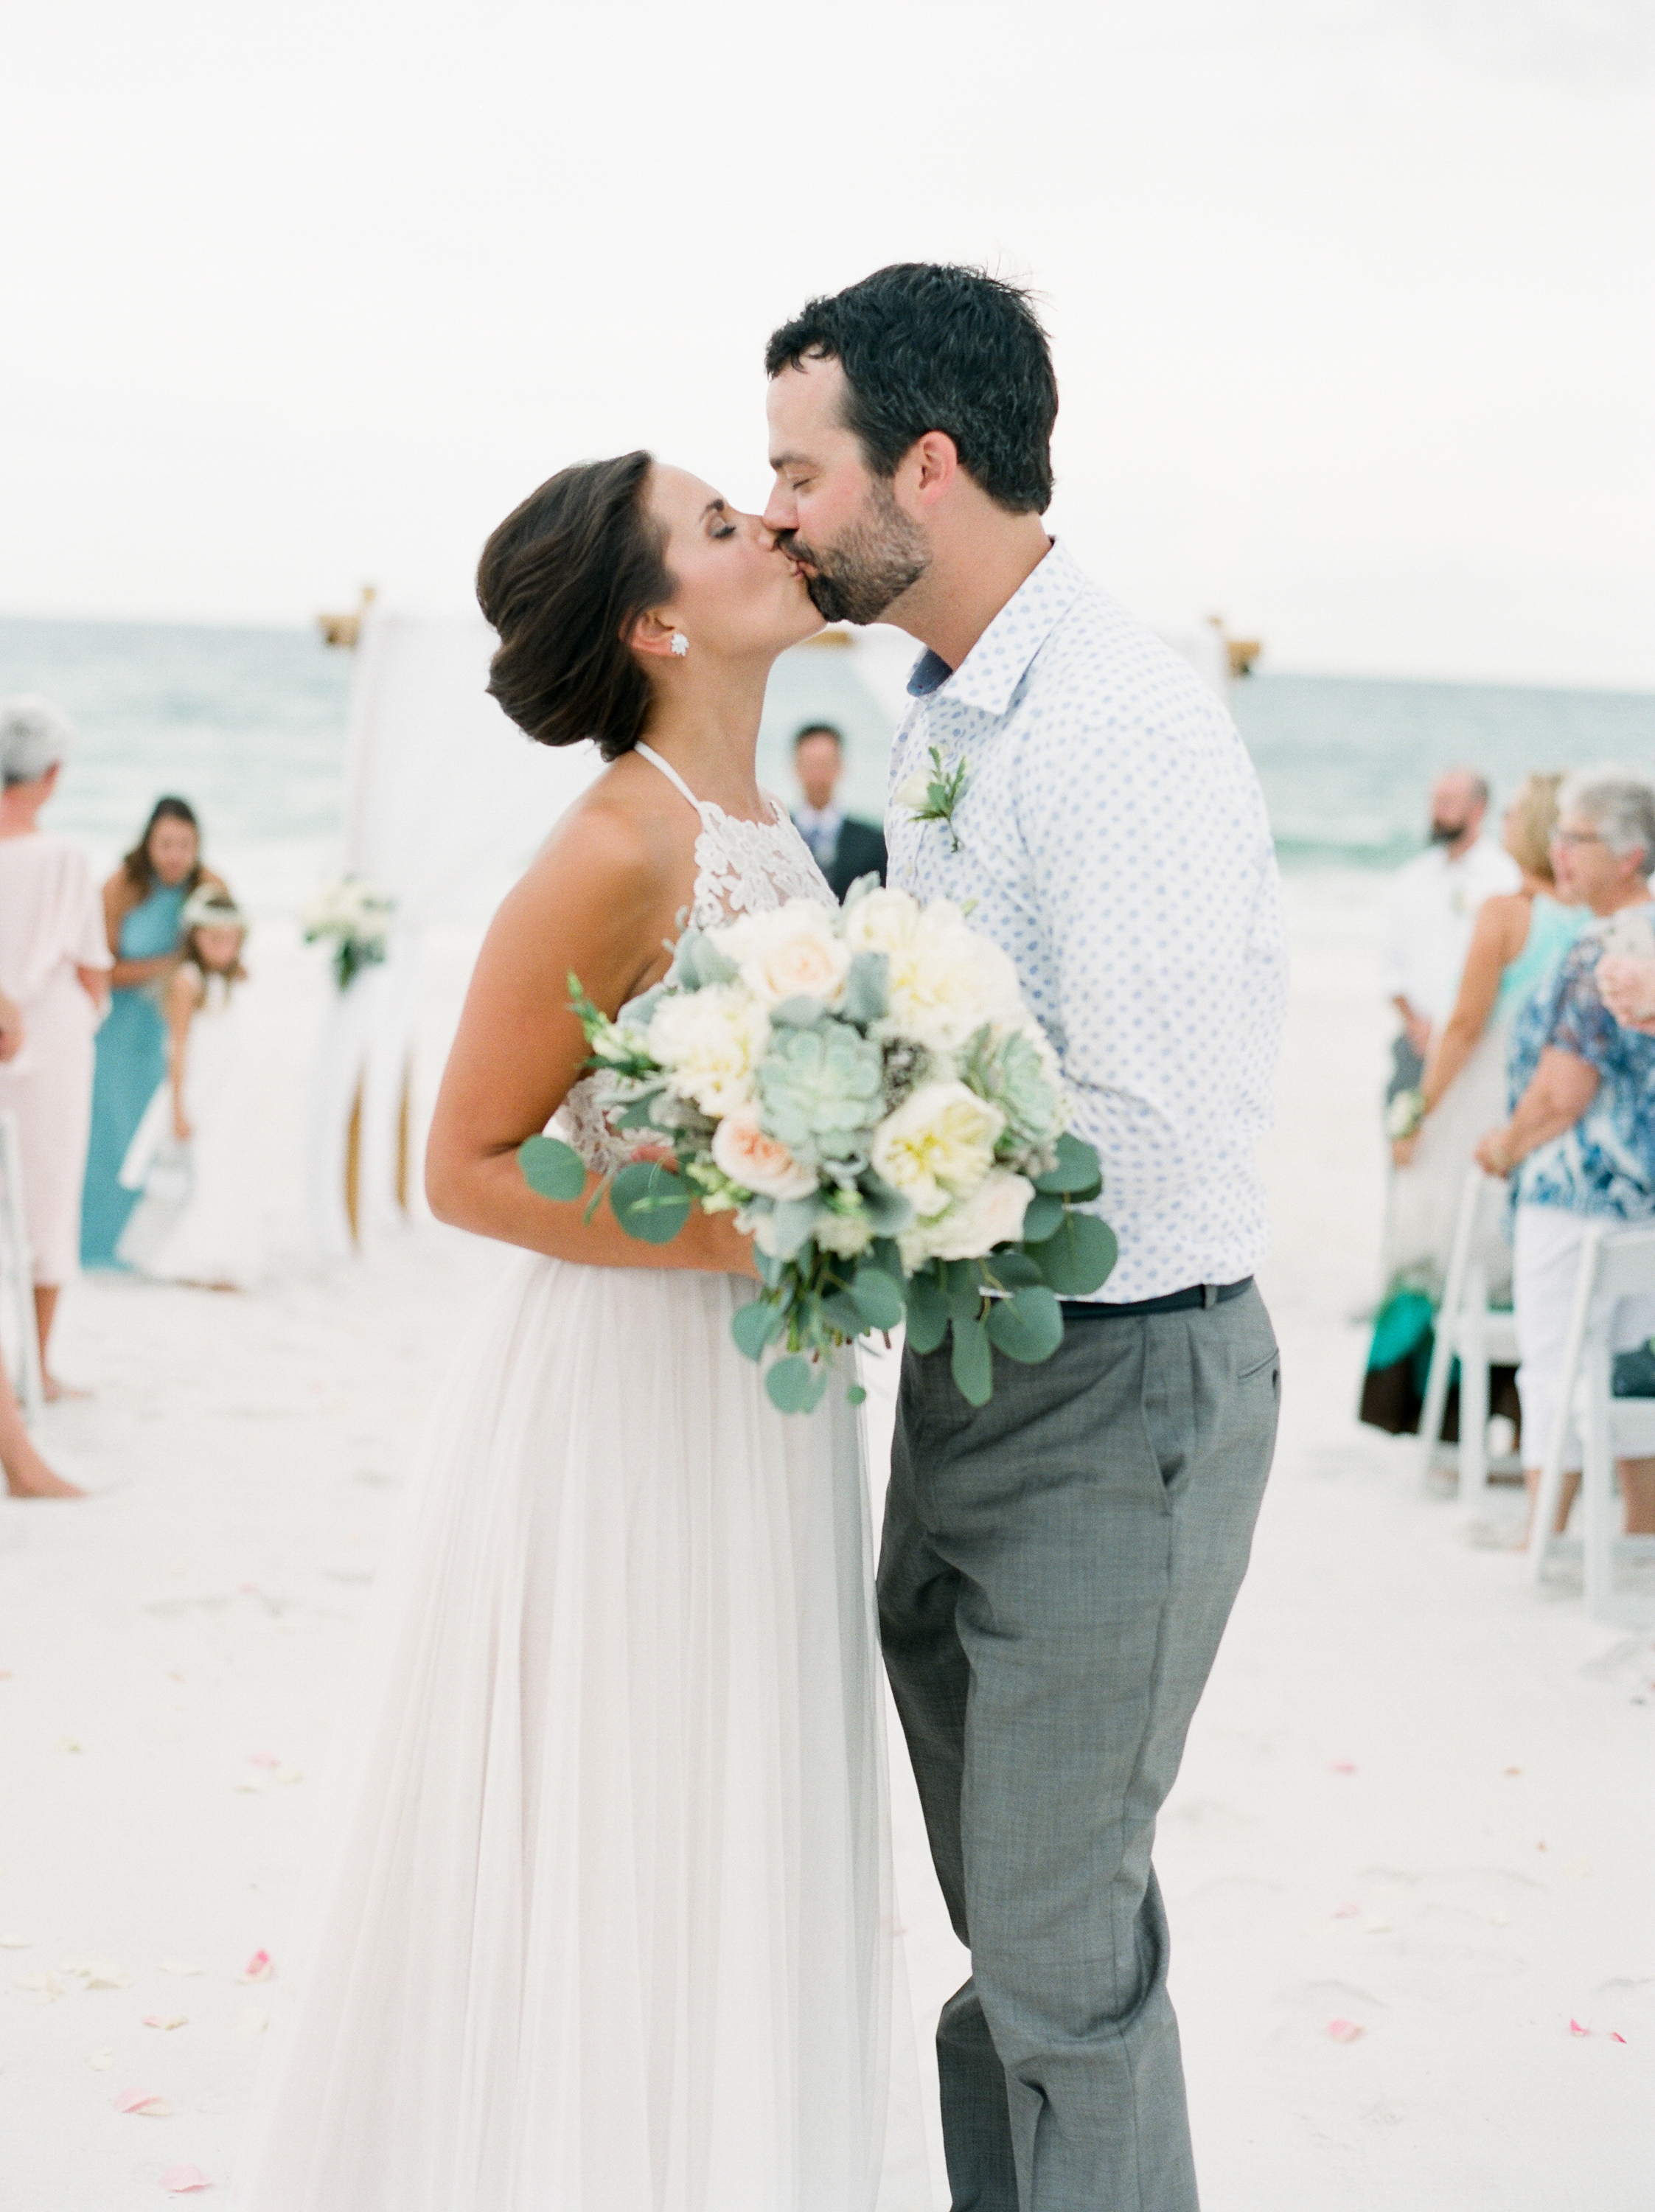 30a-neutral-wedding-kayliebpoplinphotography